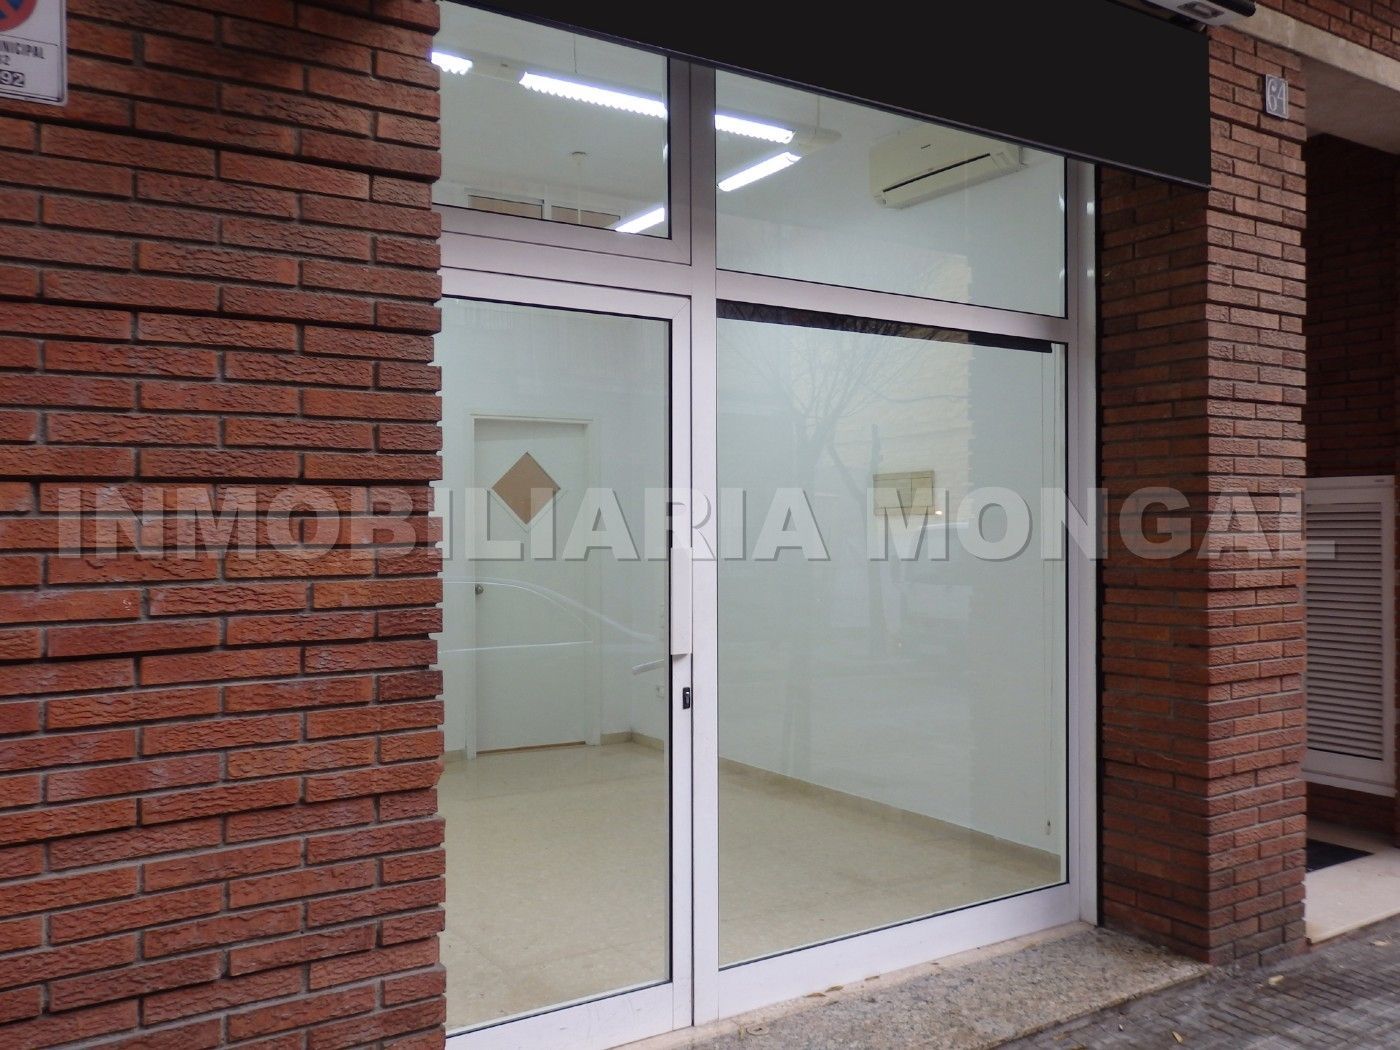 Alquiler Local Comercial  Carrer eusebi güell. Perfecto local comercial